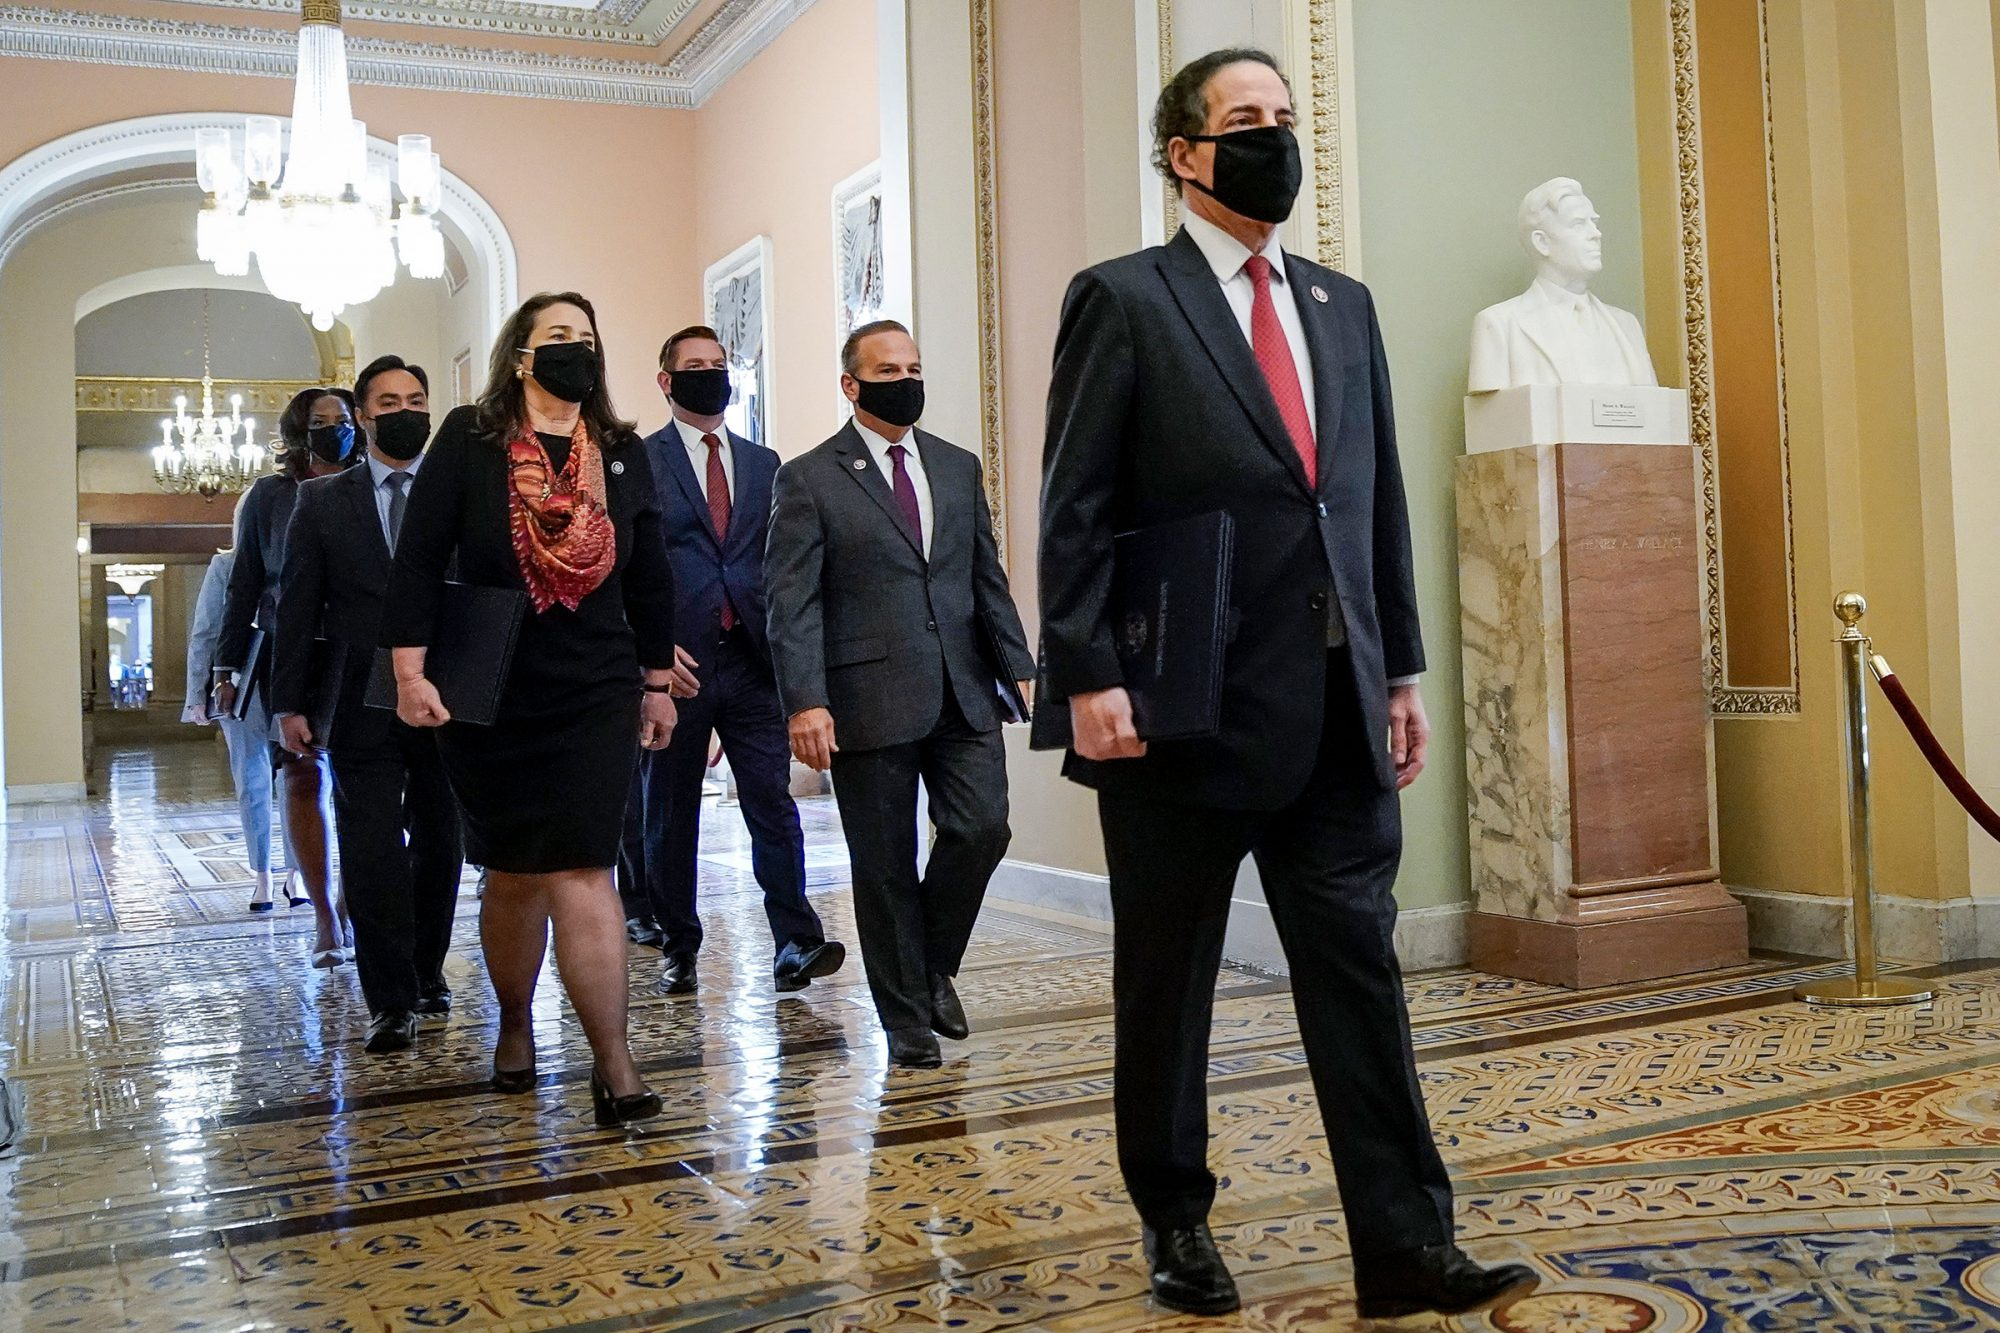 Led by lead manager Rep. Jamie Raskin (D-MD), House impeachment managers walk to the Senate Chamber on the first day of former President Donald Trump's second impeachment trial at the U.S. Capitol on February 9, 2021